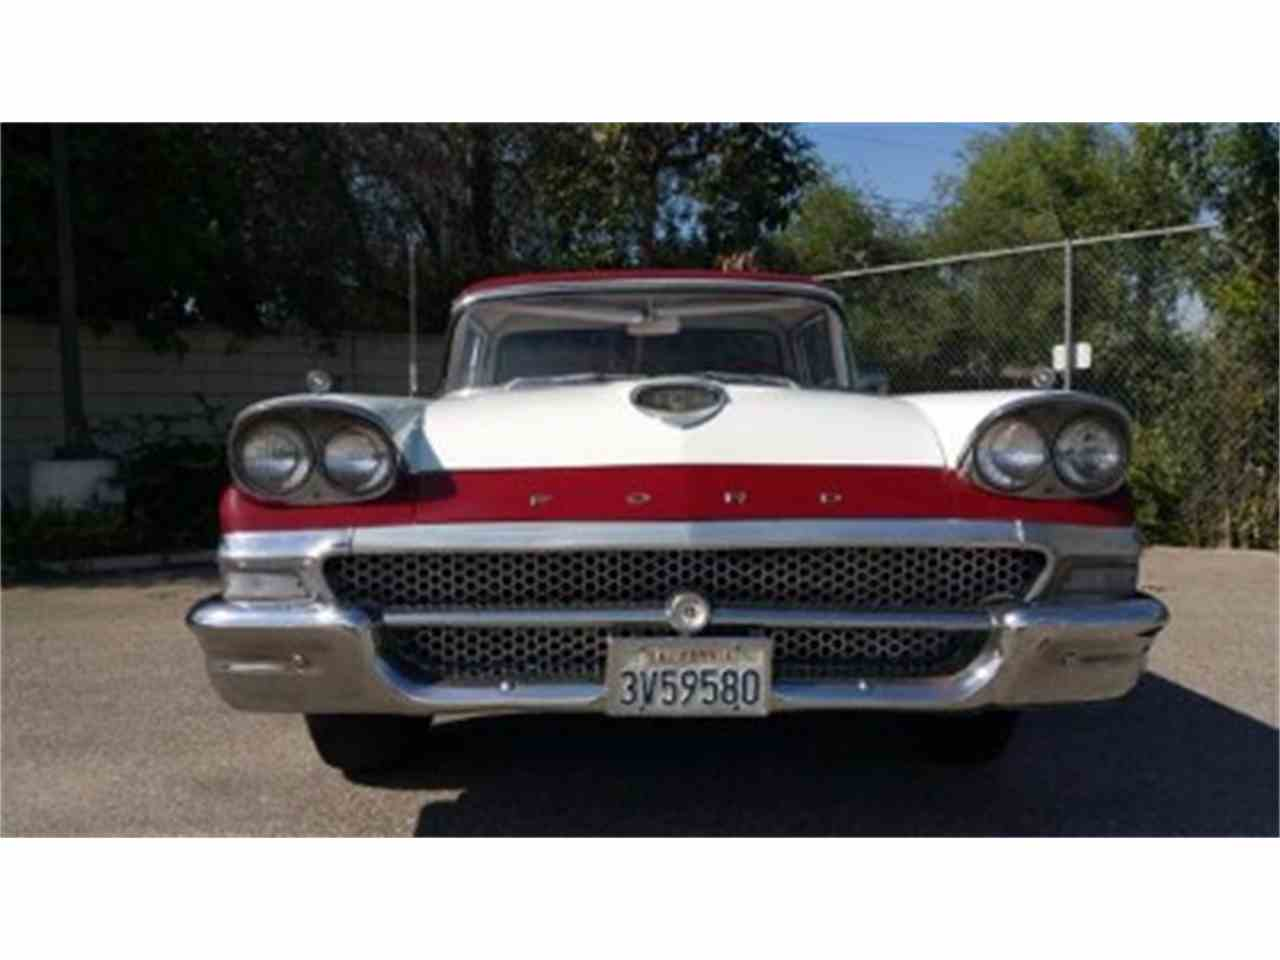 photo 5 - 1958 Ford Ranchero For Sale